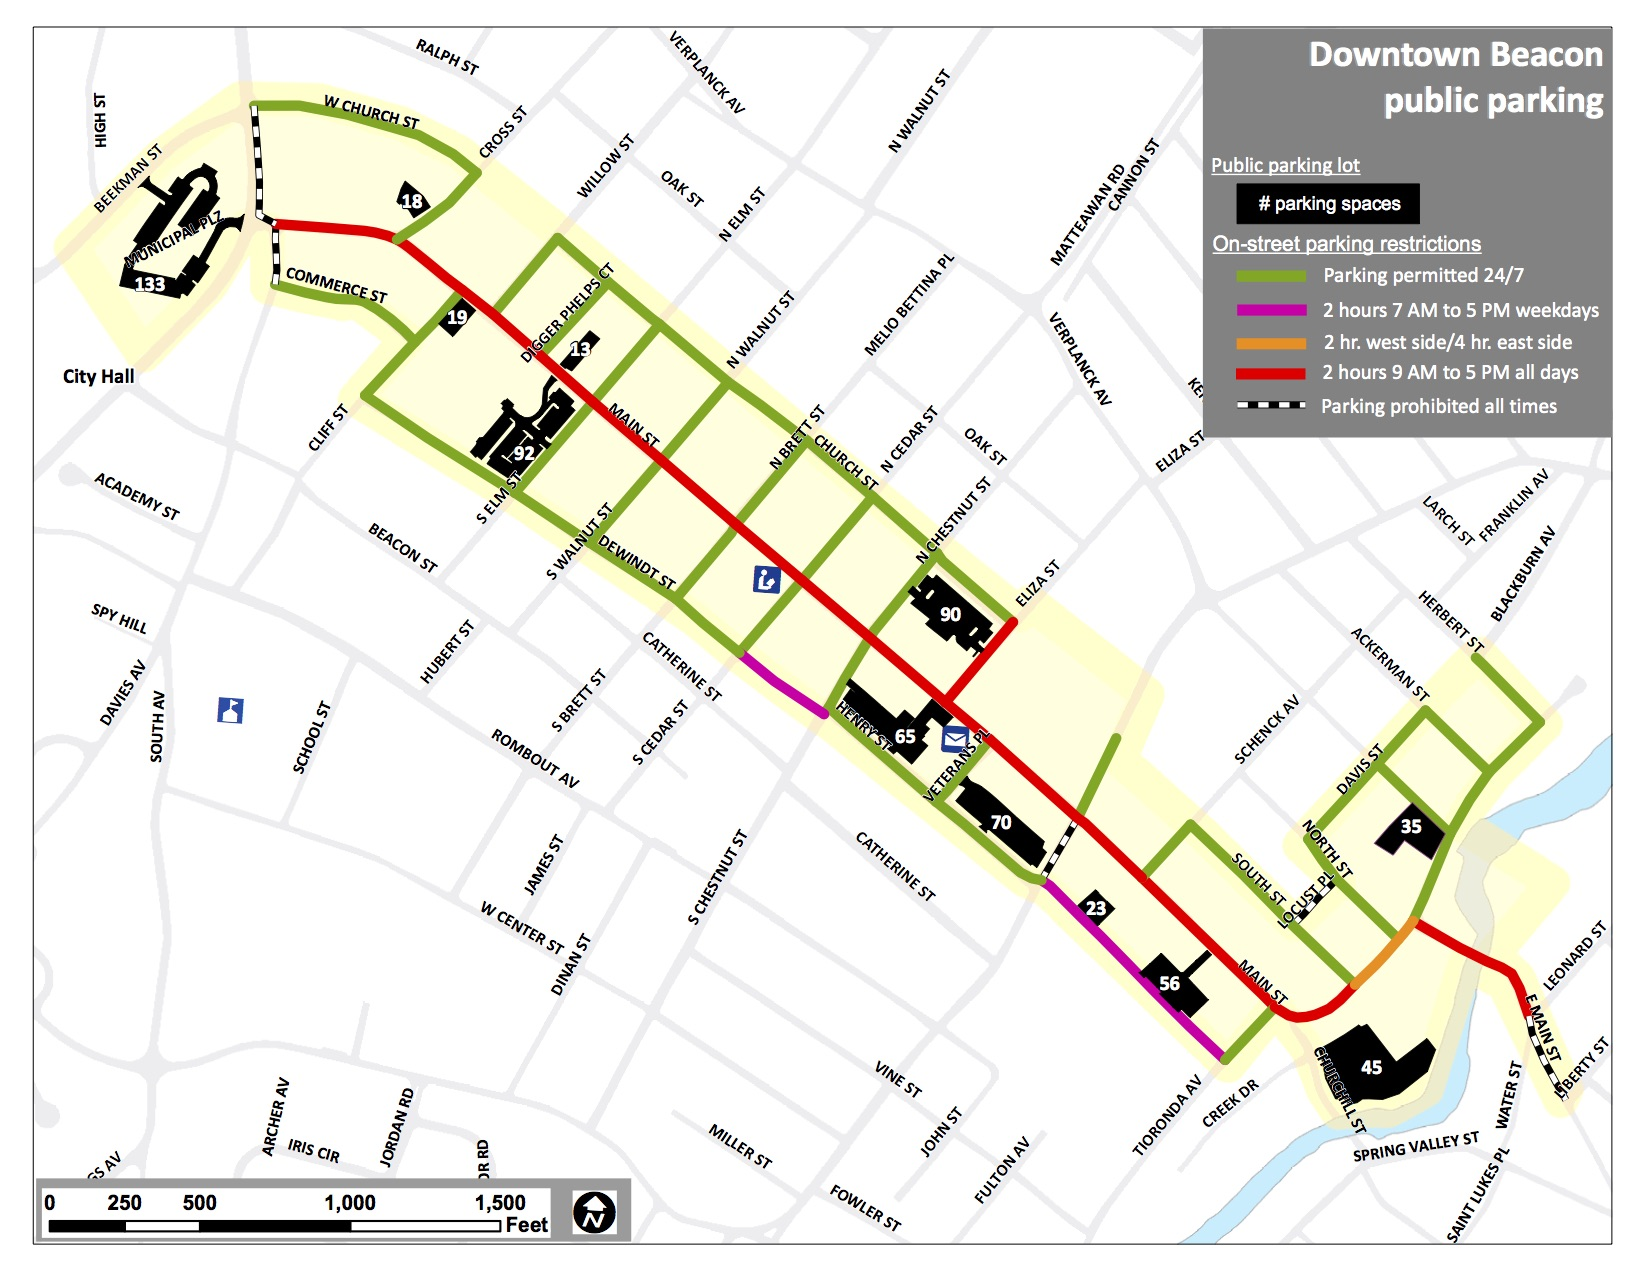 The official map of free parking lots and 2hr parking areas from the City of Beacon.